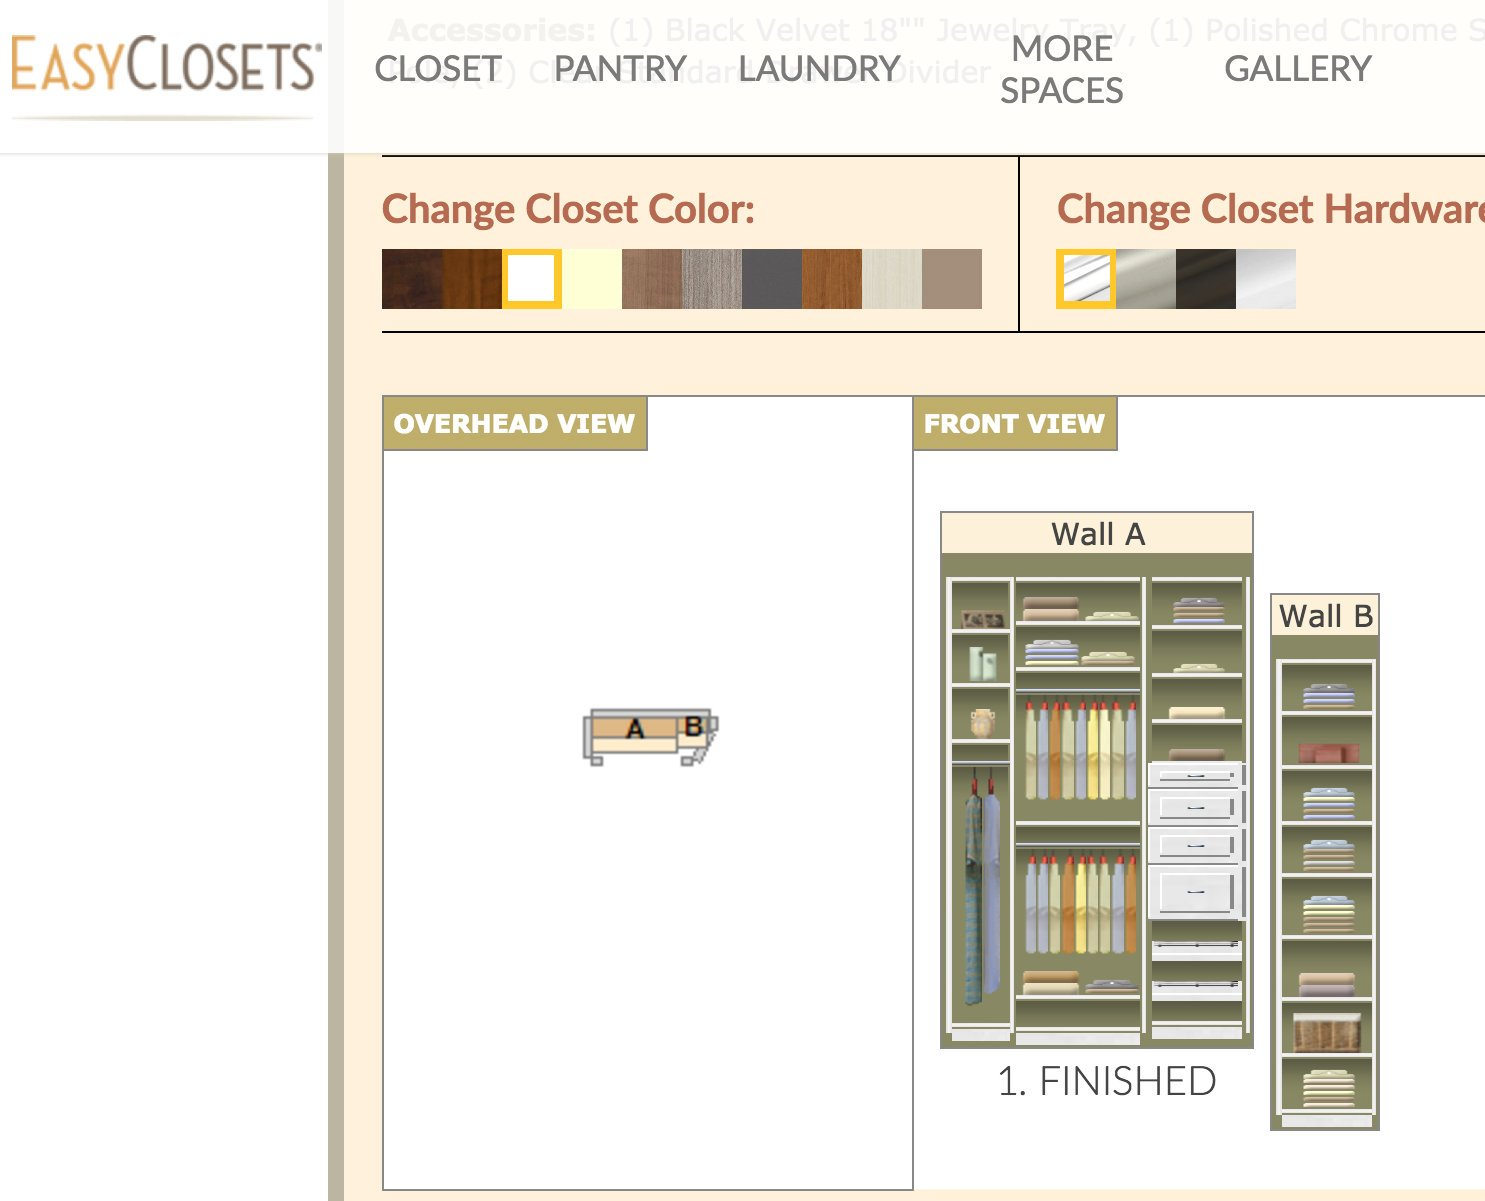 EasyClosets Design Layout